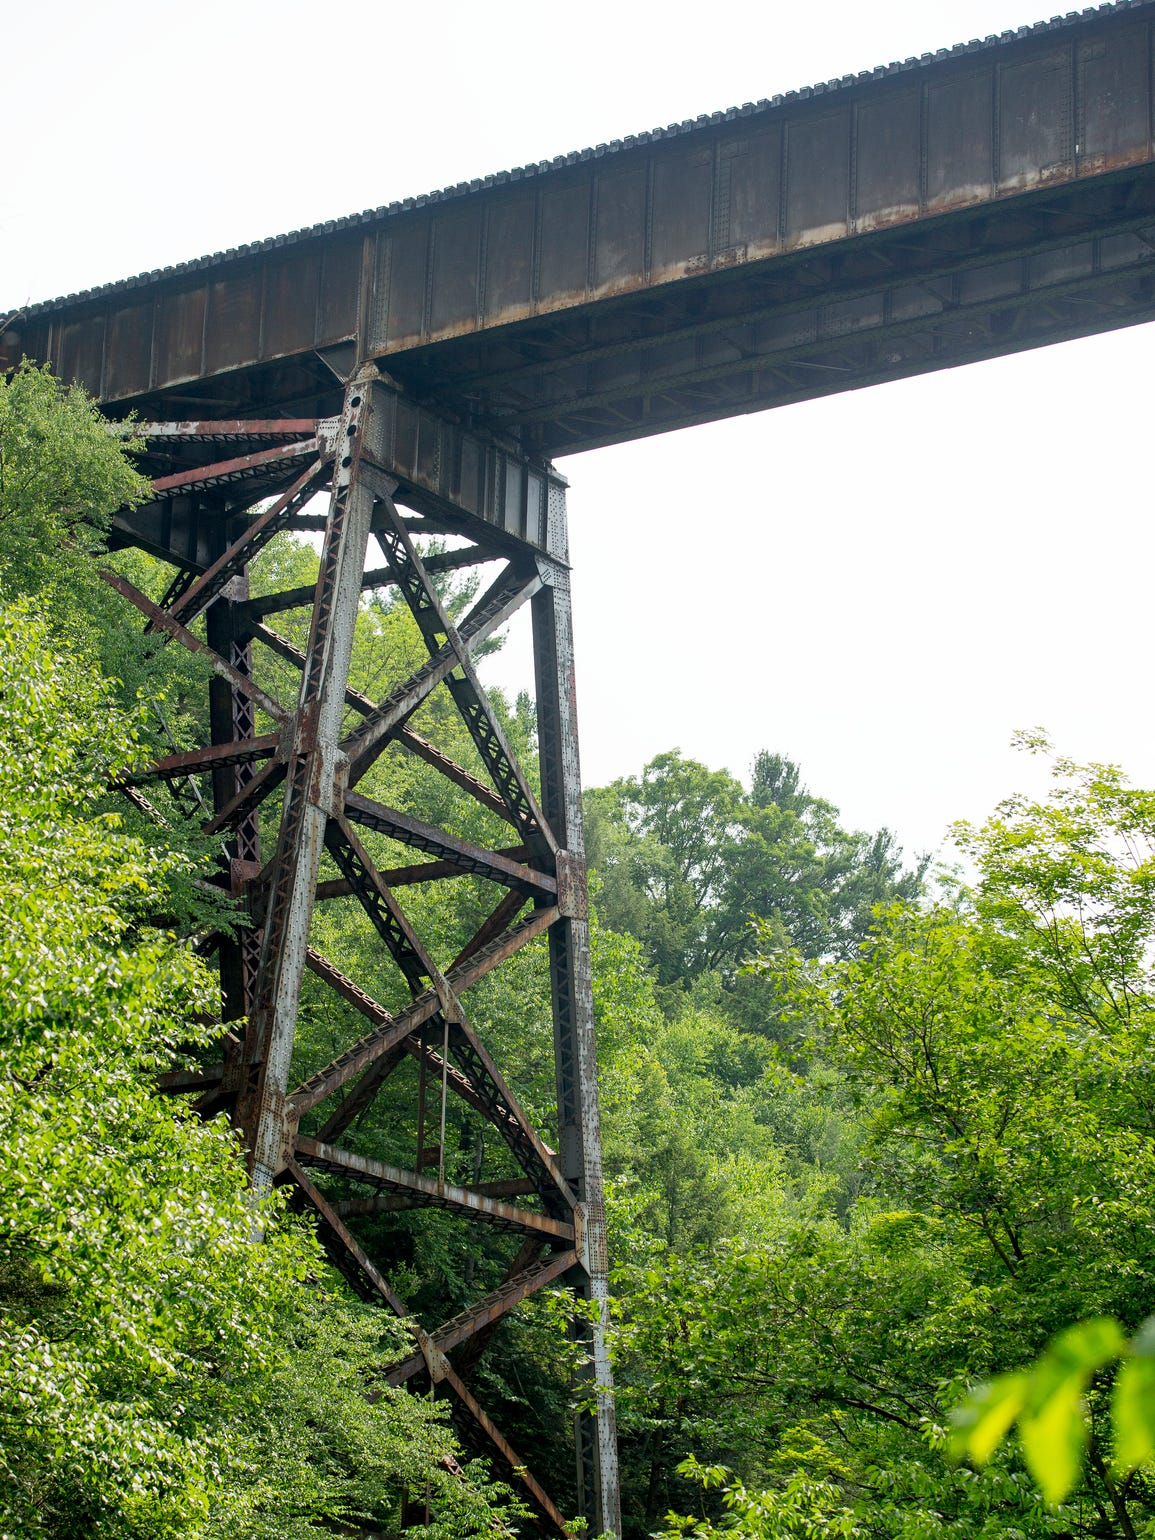 The railroad bridge over Watkins Glen State Park that